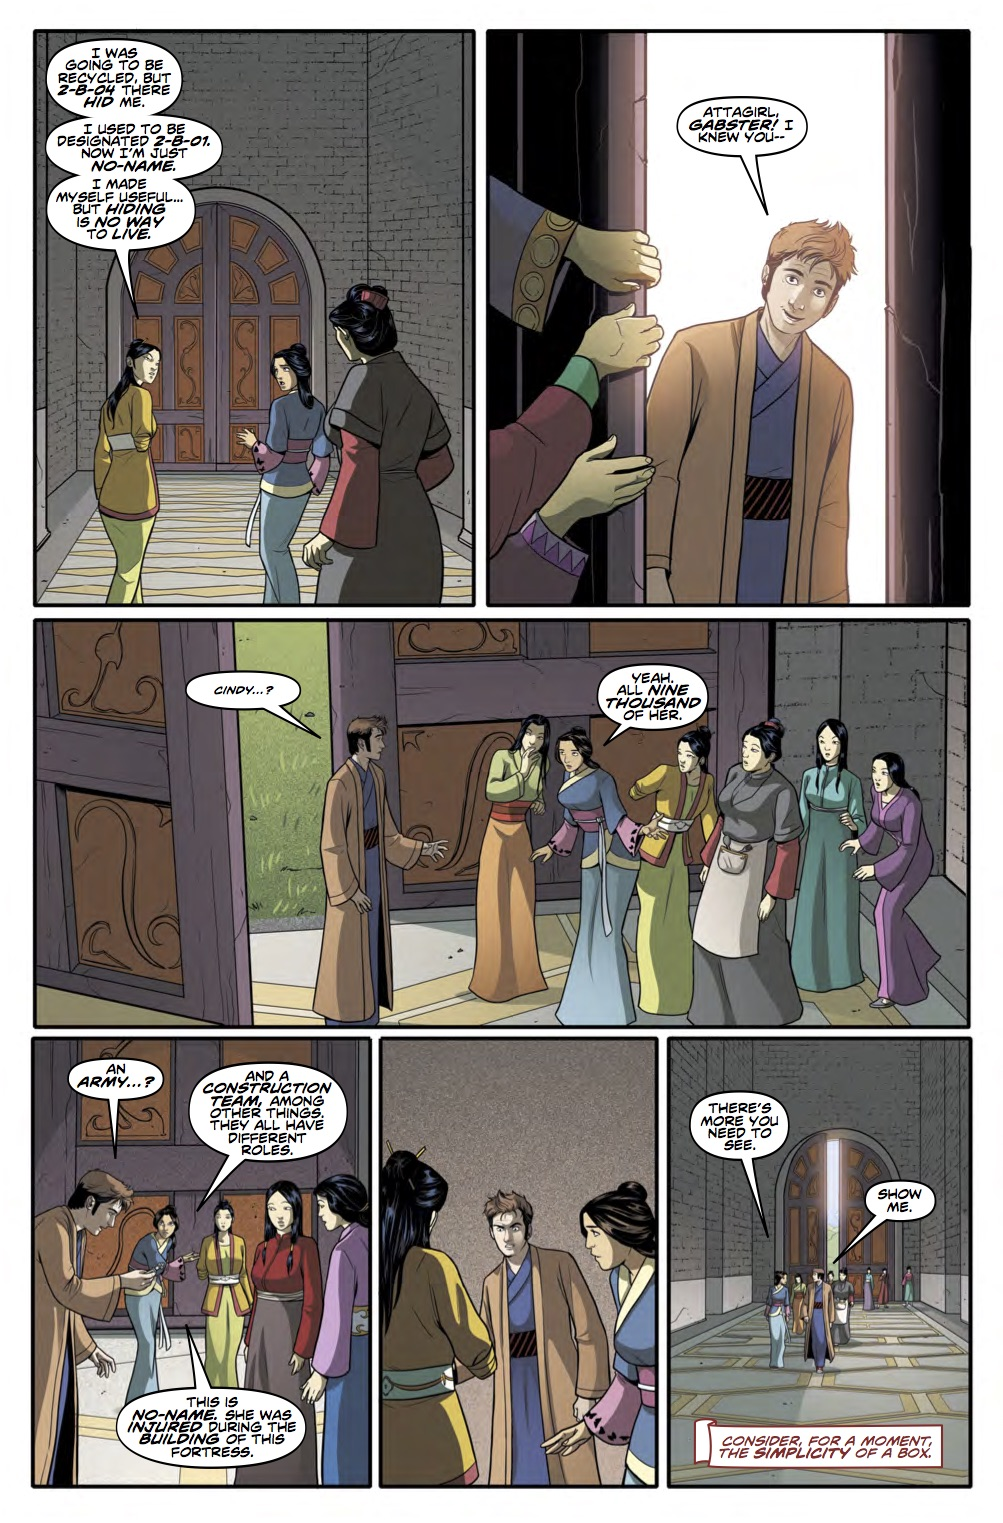 THE TENTH DOCTOR YEAR THREE #4 Page 5 (Credit: Titan)